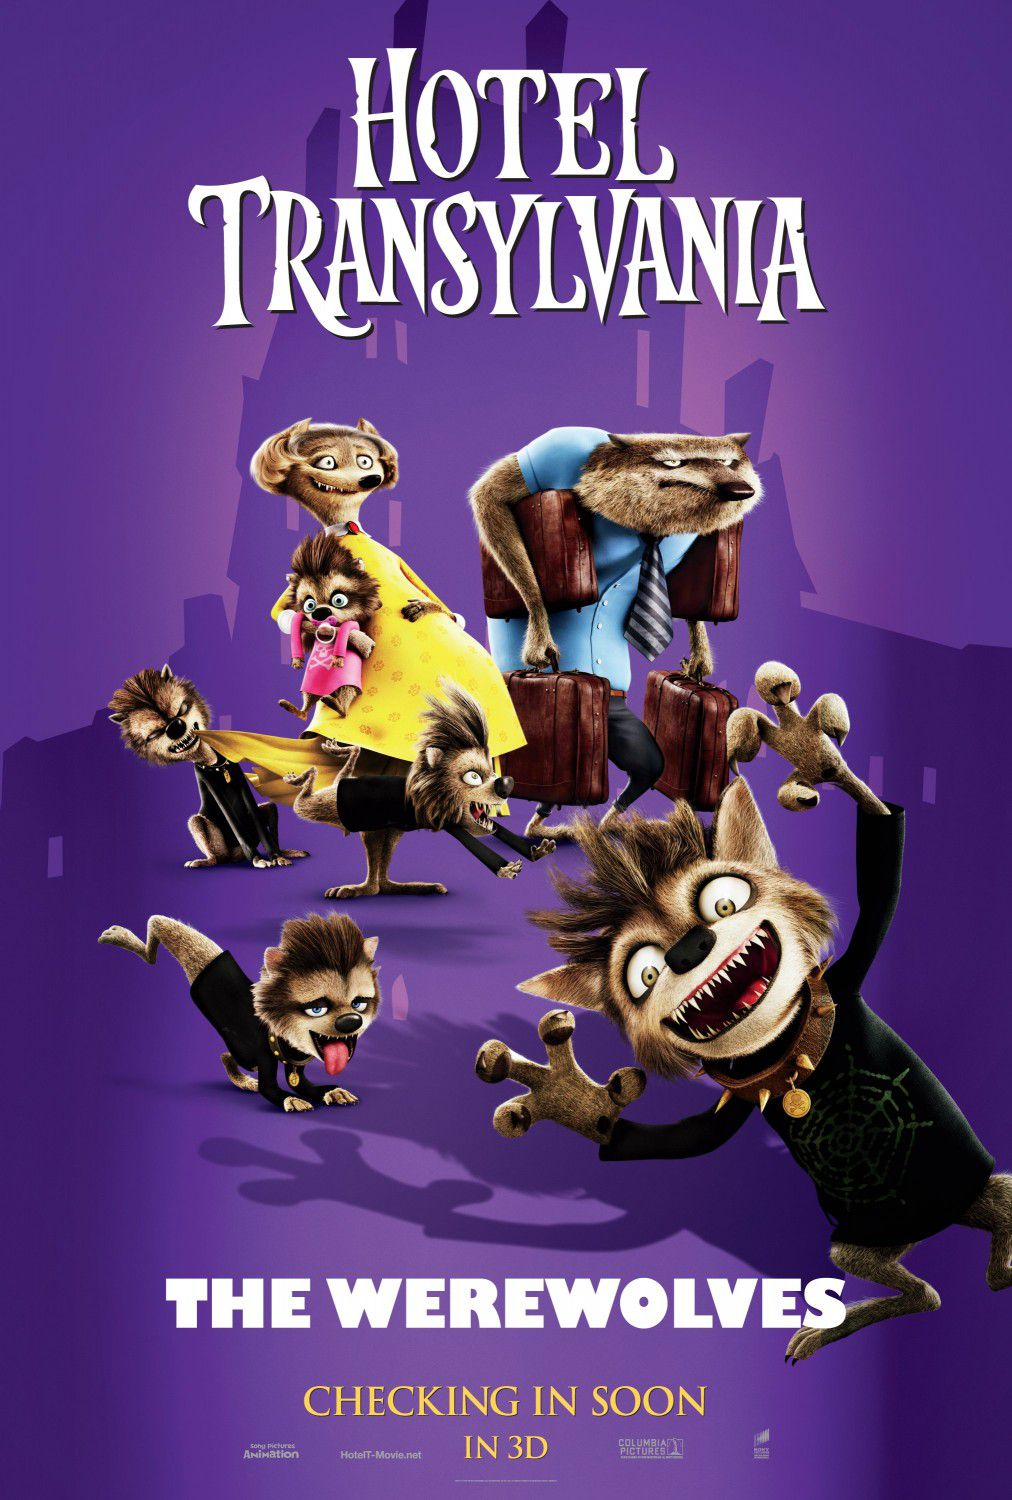 Hotel Transylvania - Wolf and Family